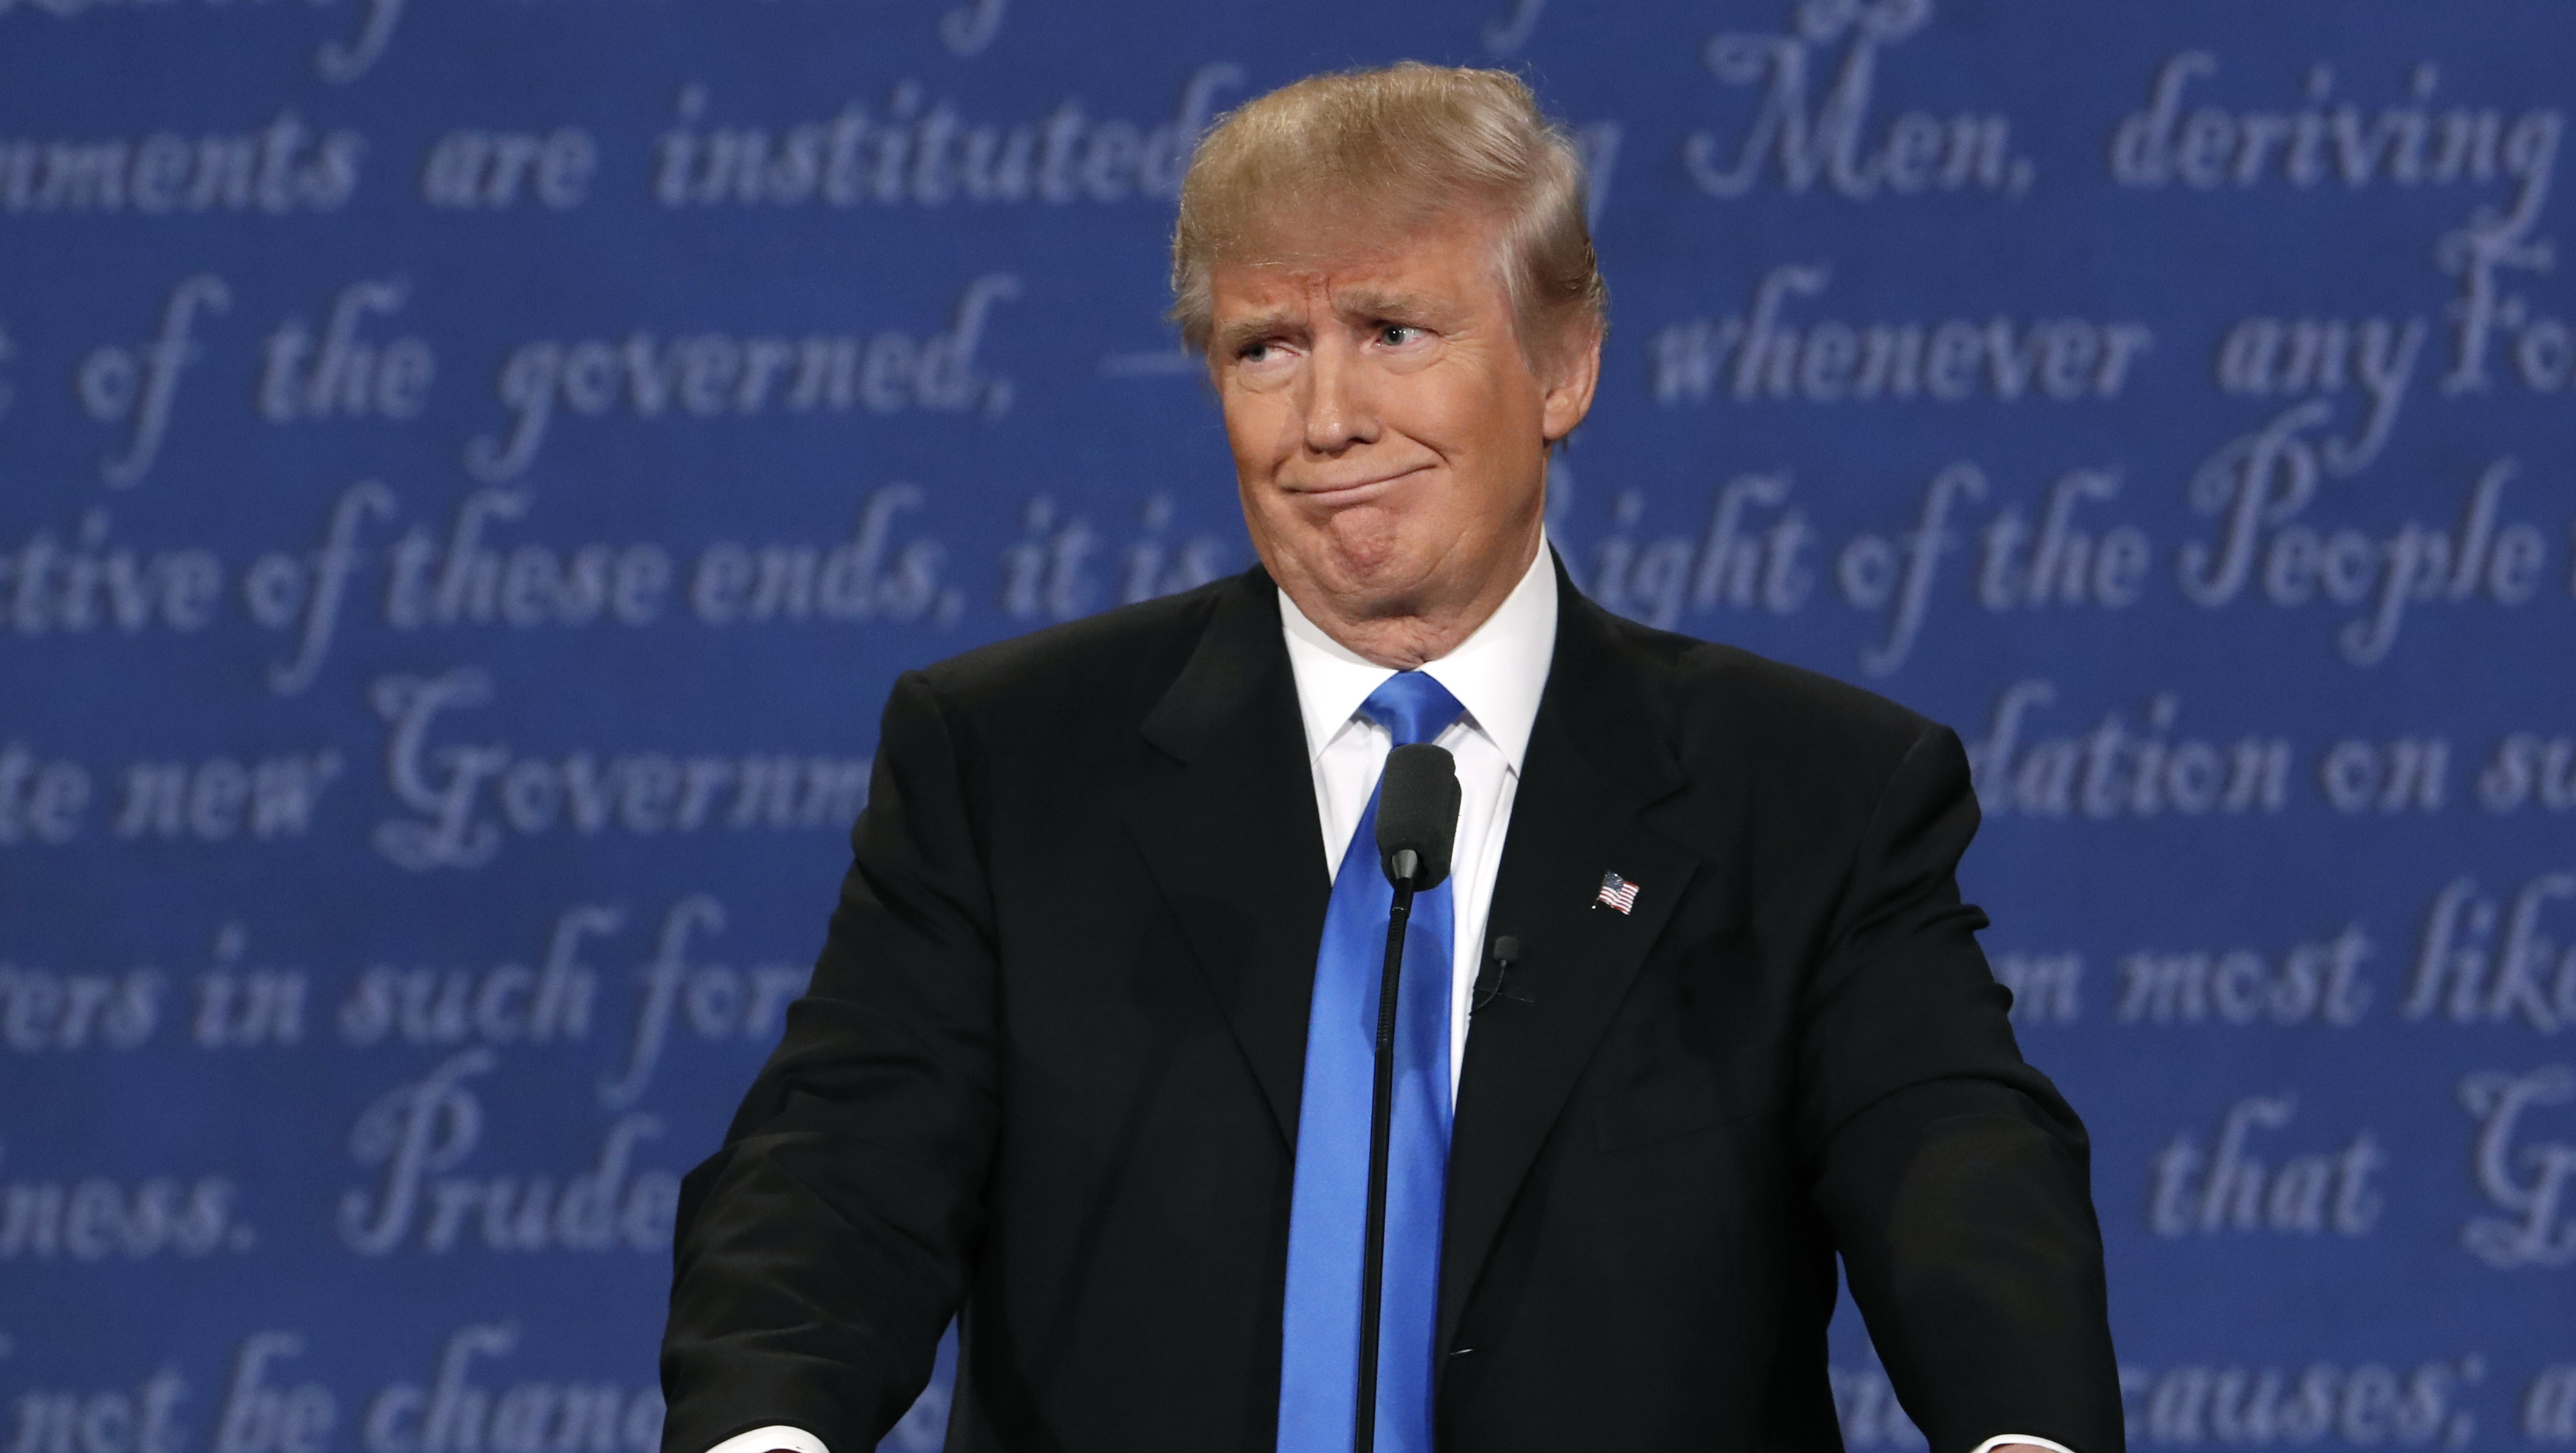 Republican U.S. presidential nominee Donald Trump reacts during the first debate with Democratic U.S. presidential nominee Hillary Clinton at Hofstra University in Hempstead, New York, U.S., September 26, 2016.